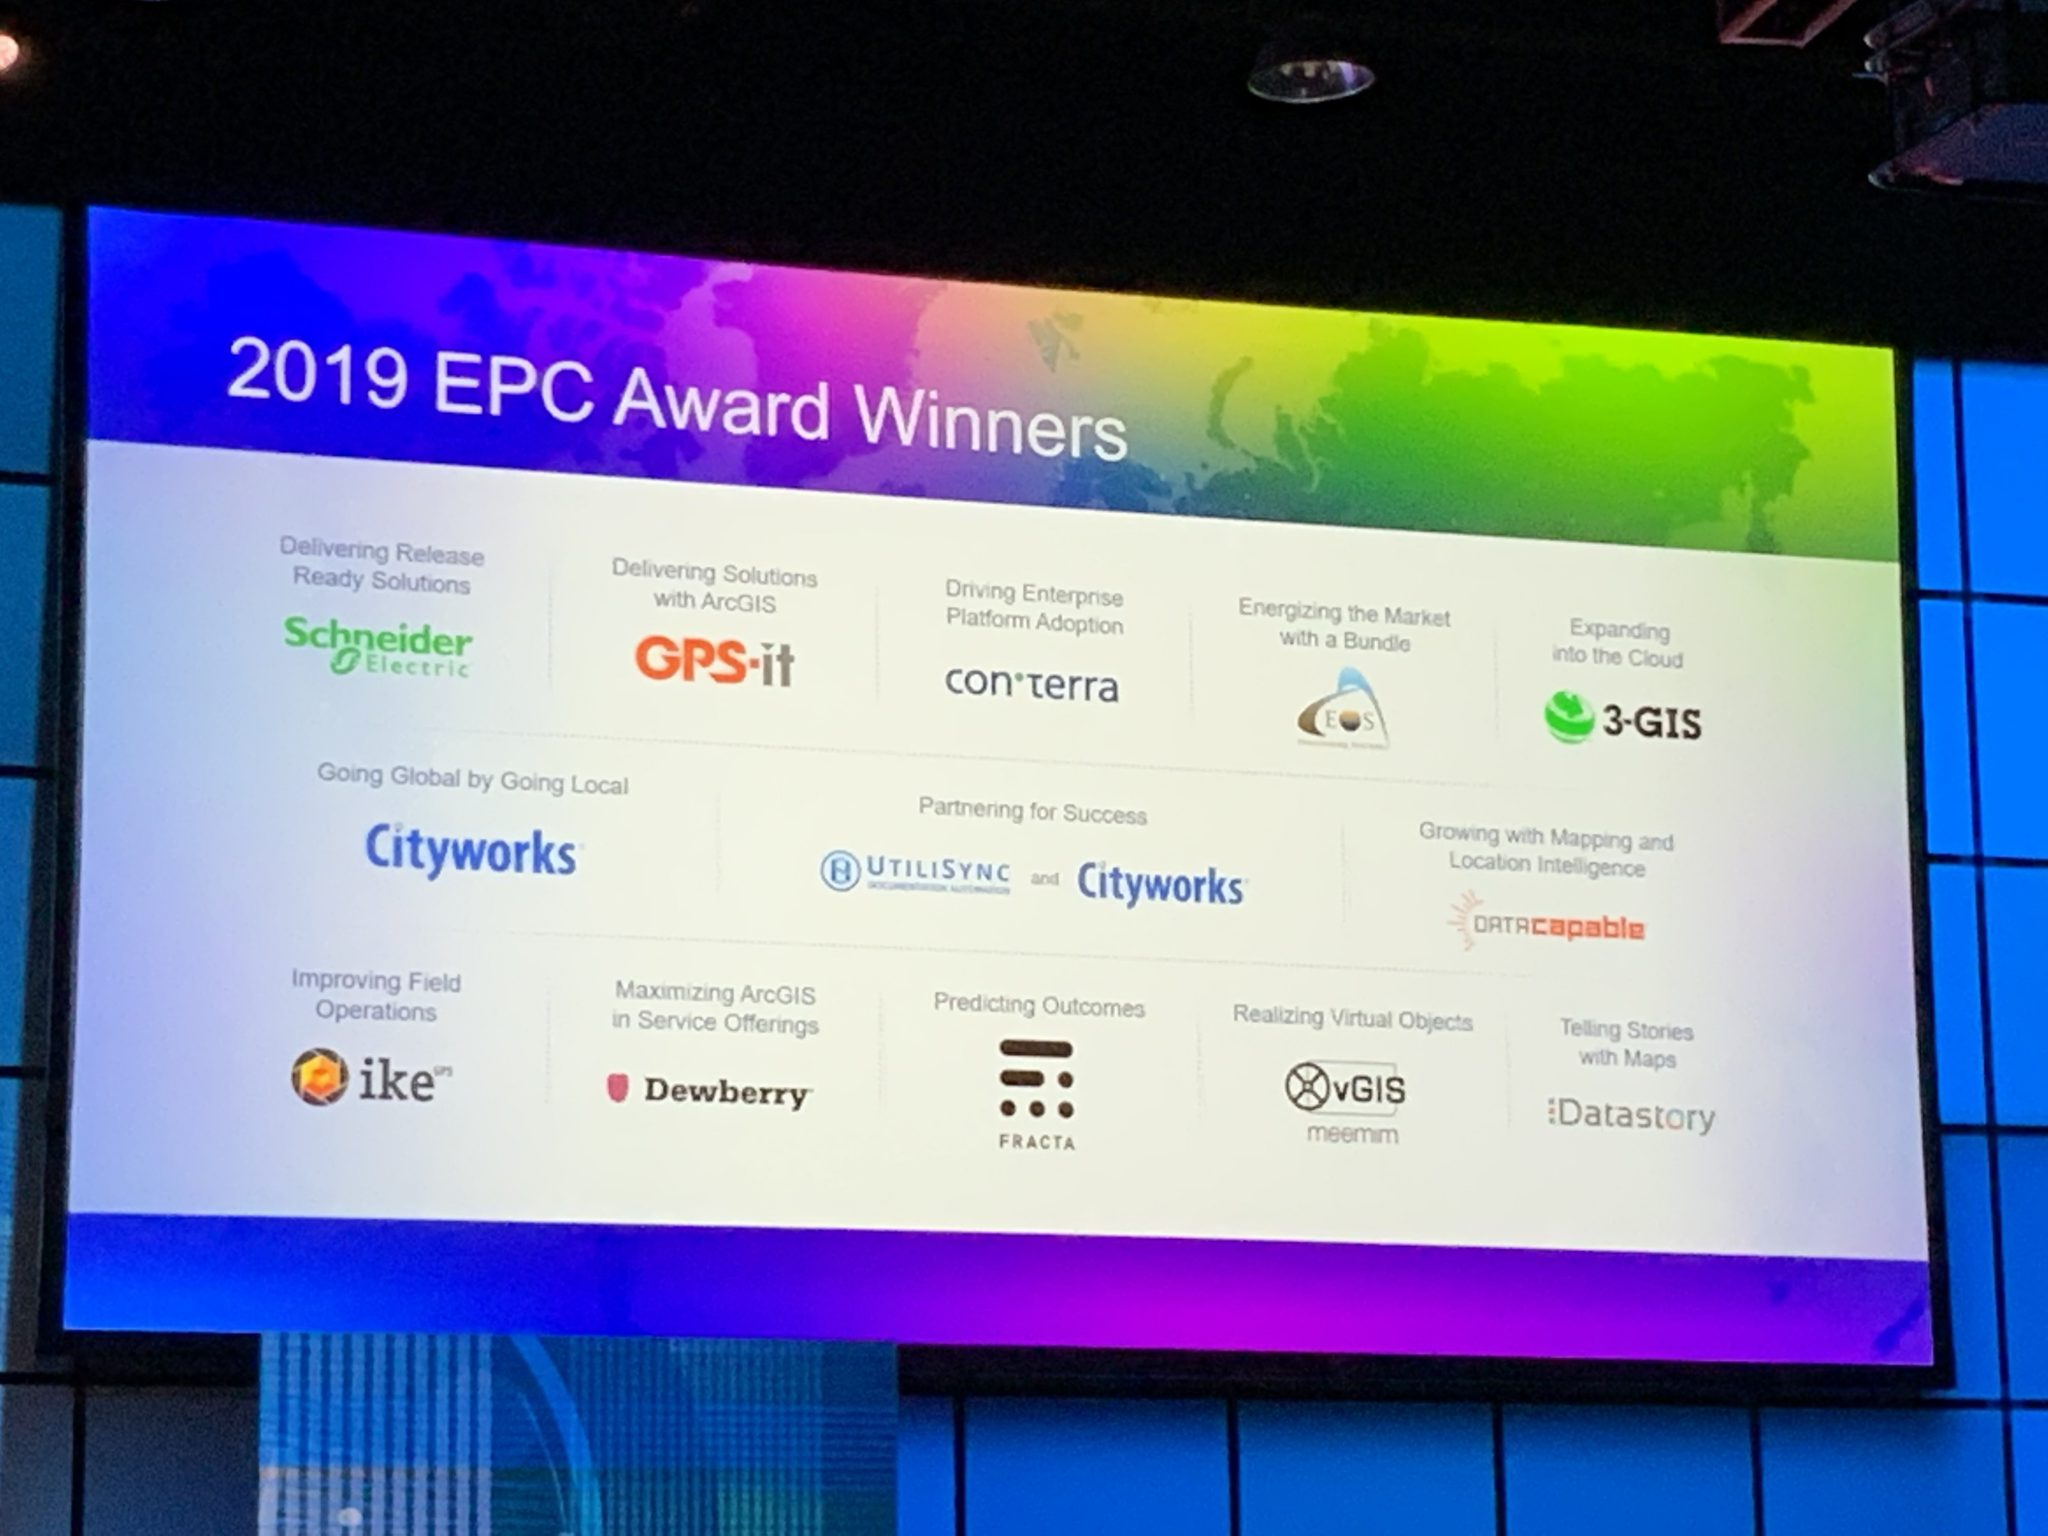 IMAGE – PRESS RELEASE – 2019 EPC AWARD – Eos Positioning Systems Esri Award Winner Partner Conference 2019-03-03 11.55.32